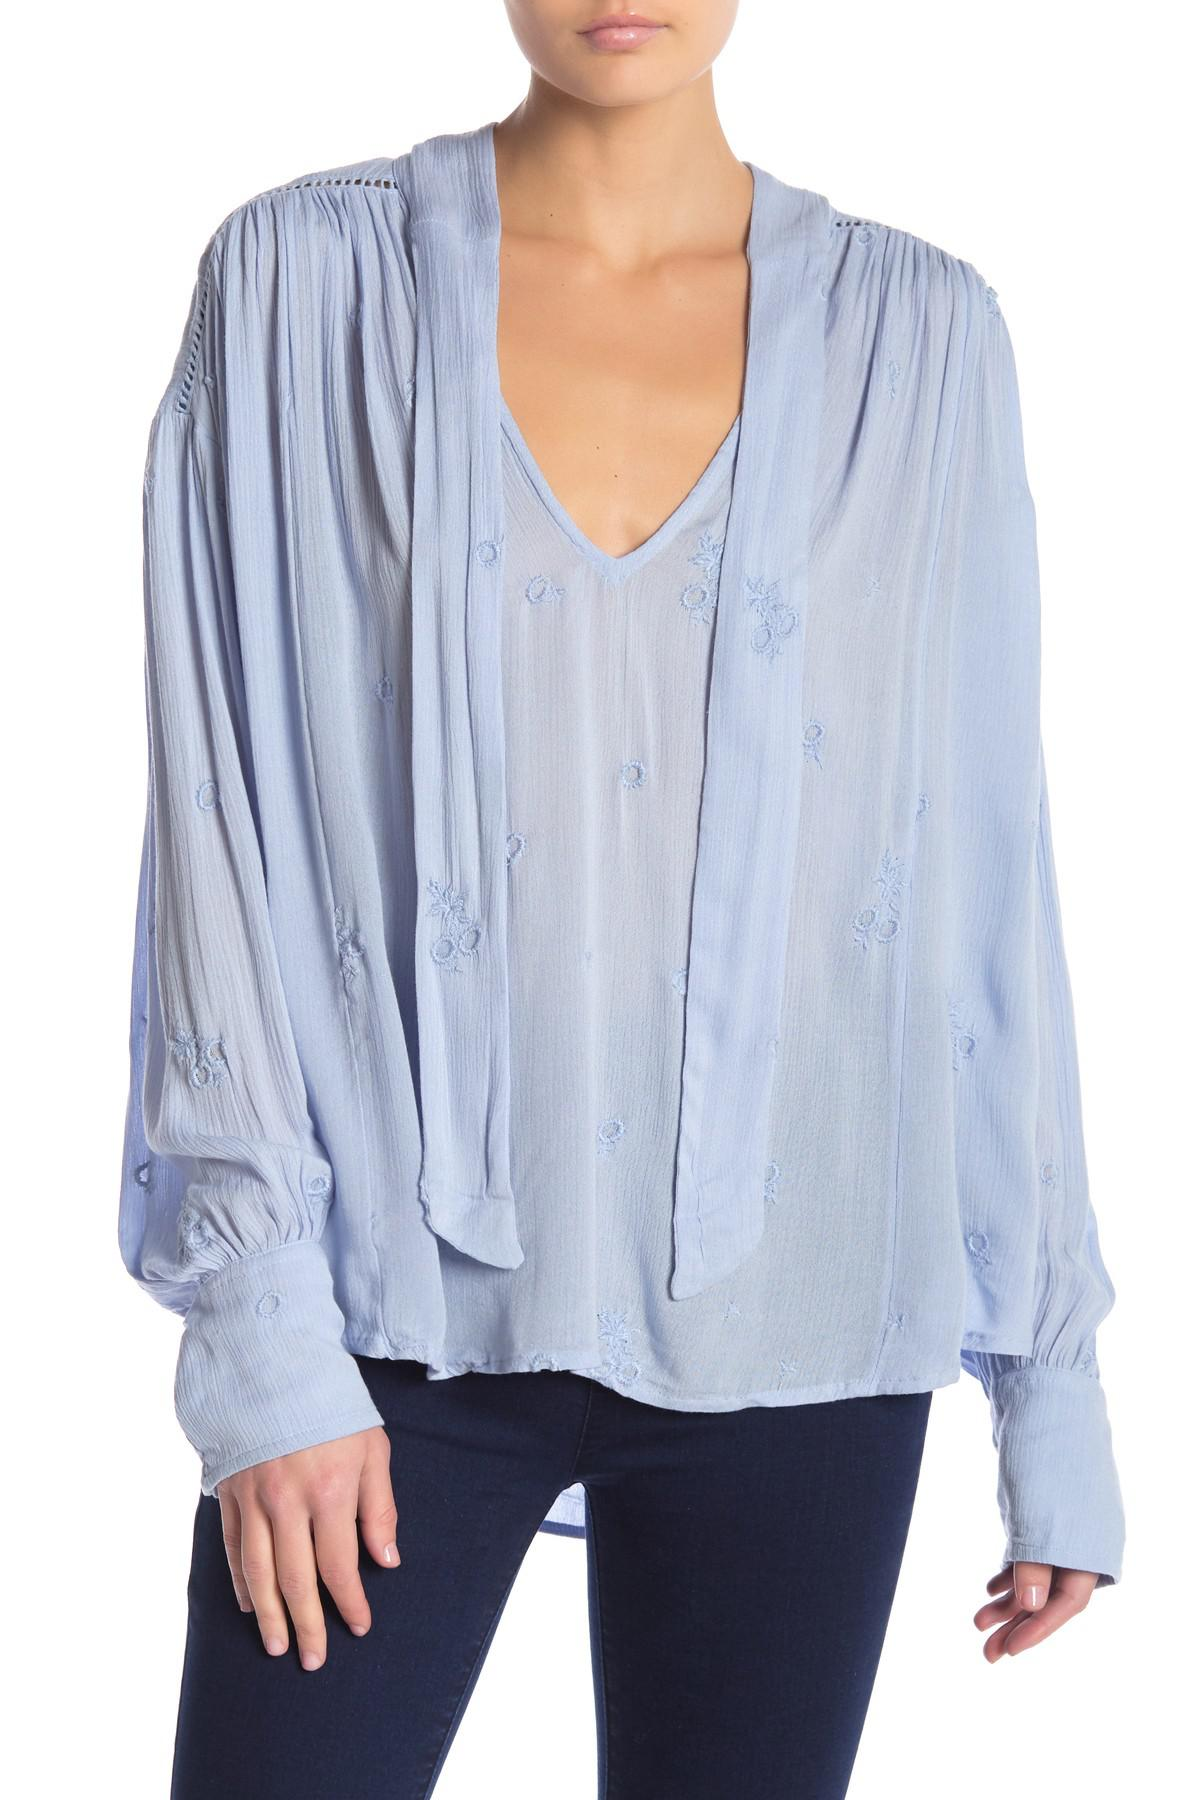 53af77b022b00f Free People Wishful Moments Tie Neck Top in Blue - Lyst